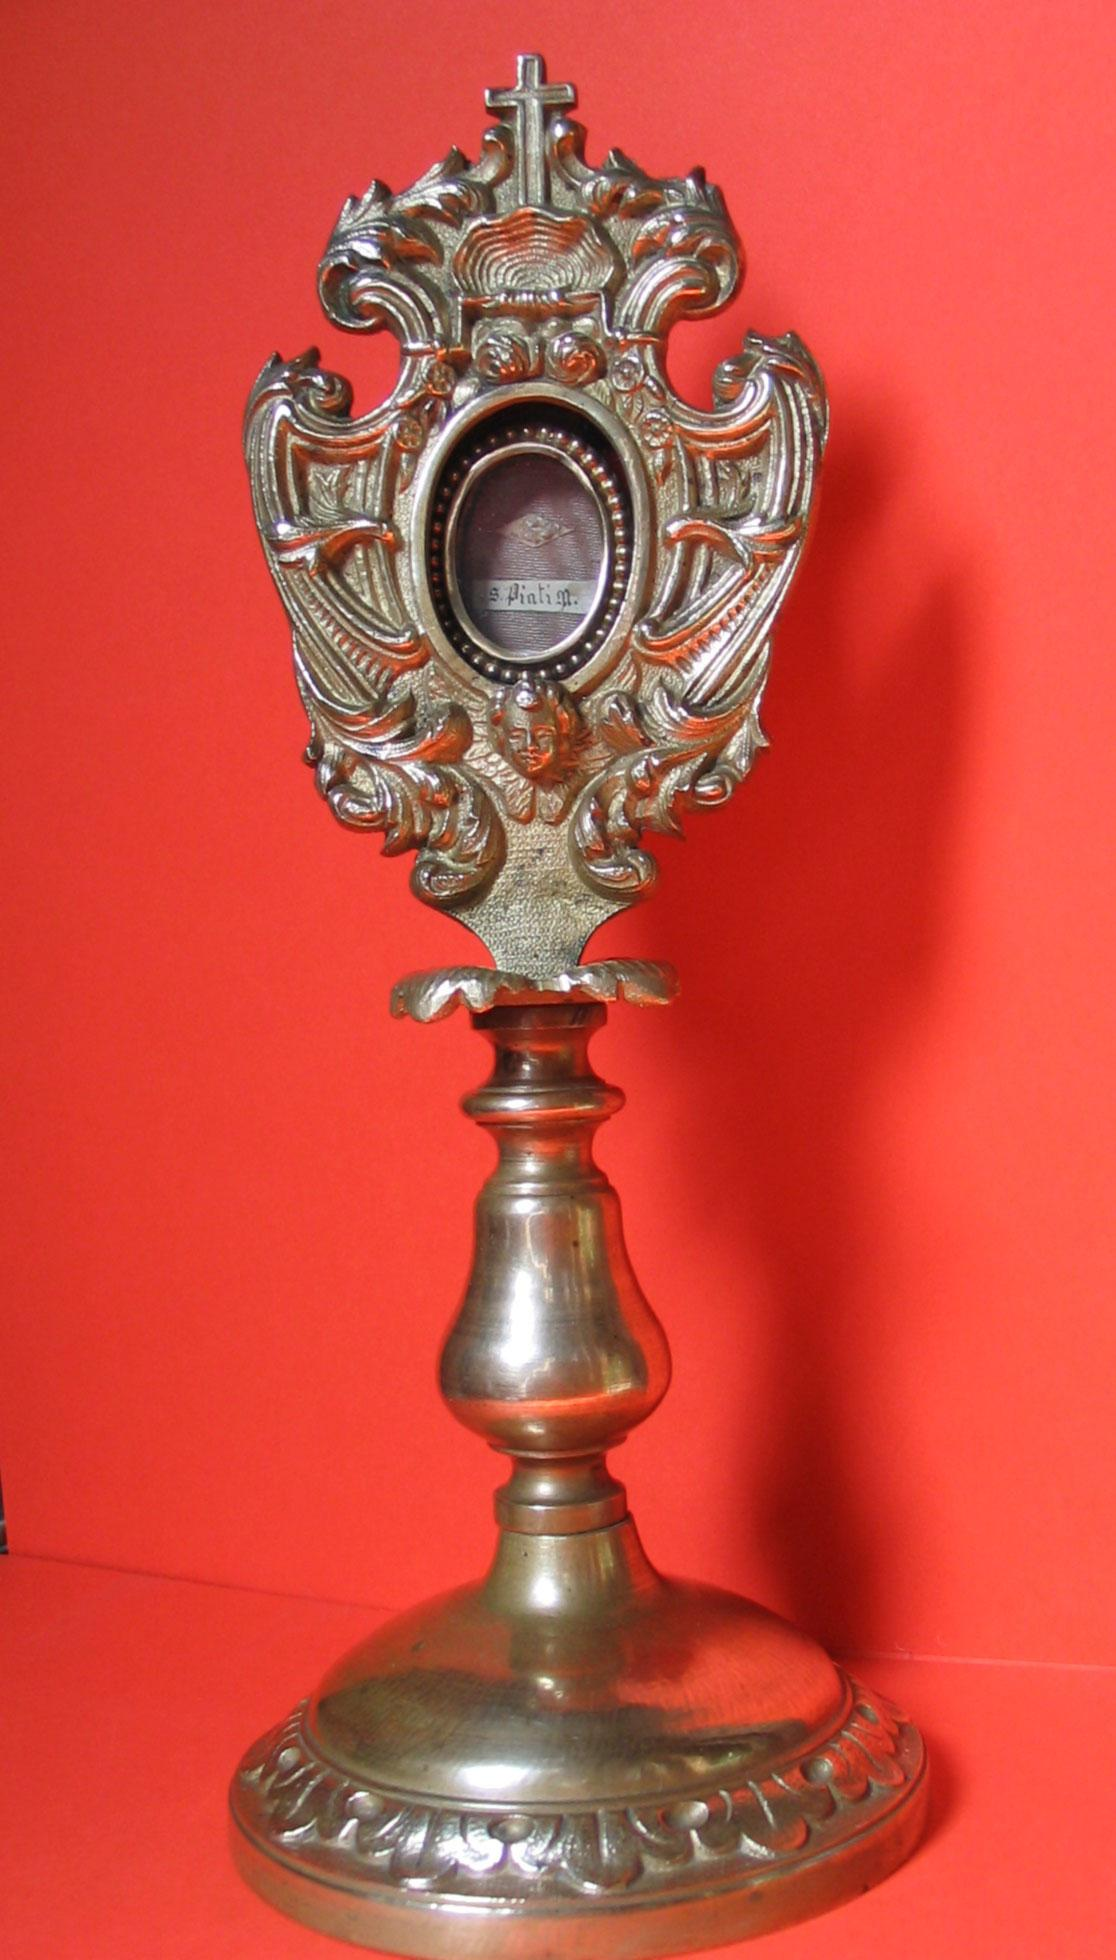 Petite monstrance de bronze et sa parcelle d'os, � Mus�e de la Tour �  - Cl. Jean-Paul Thorez - 2009